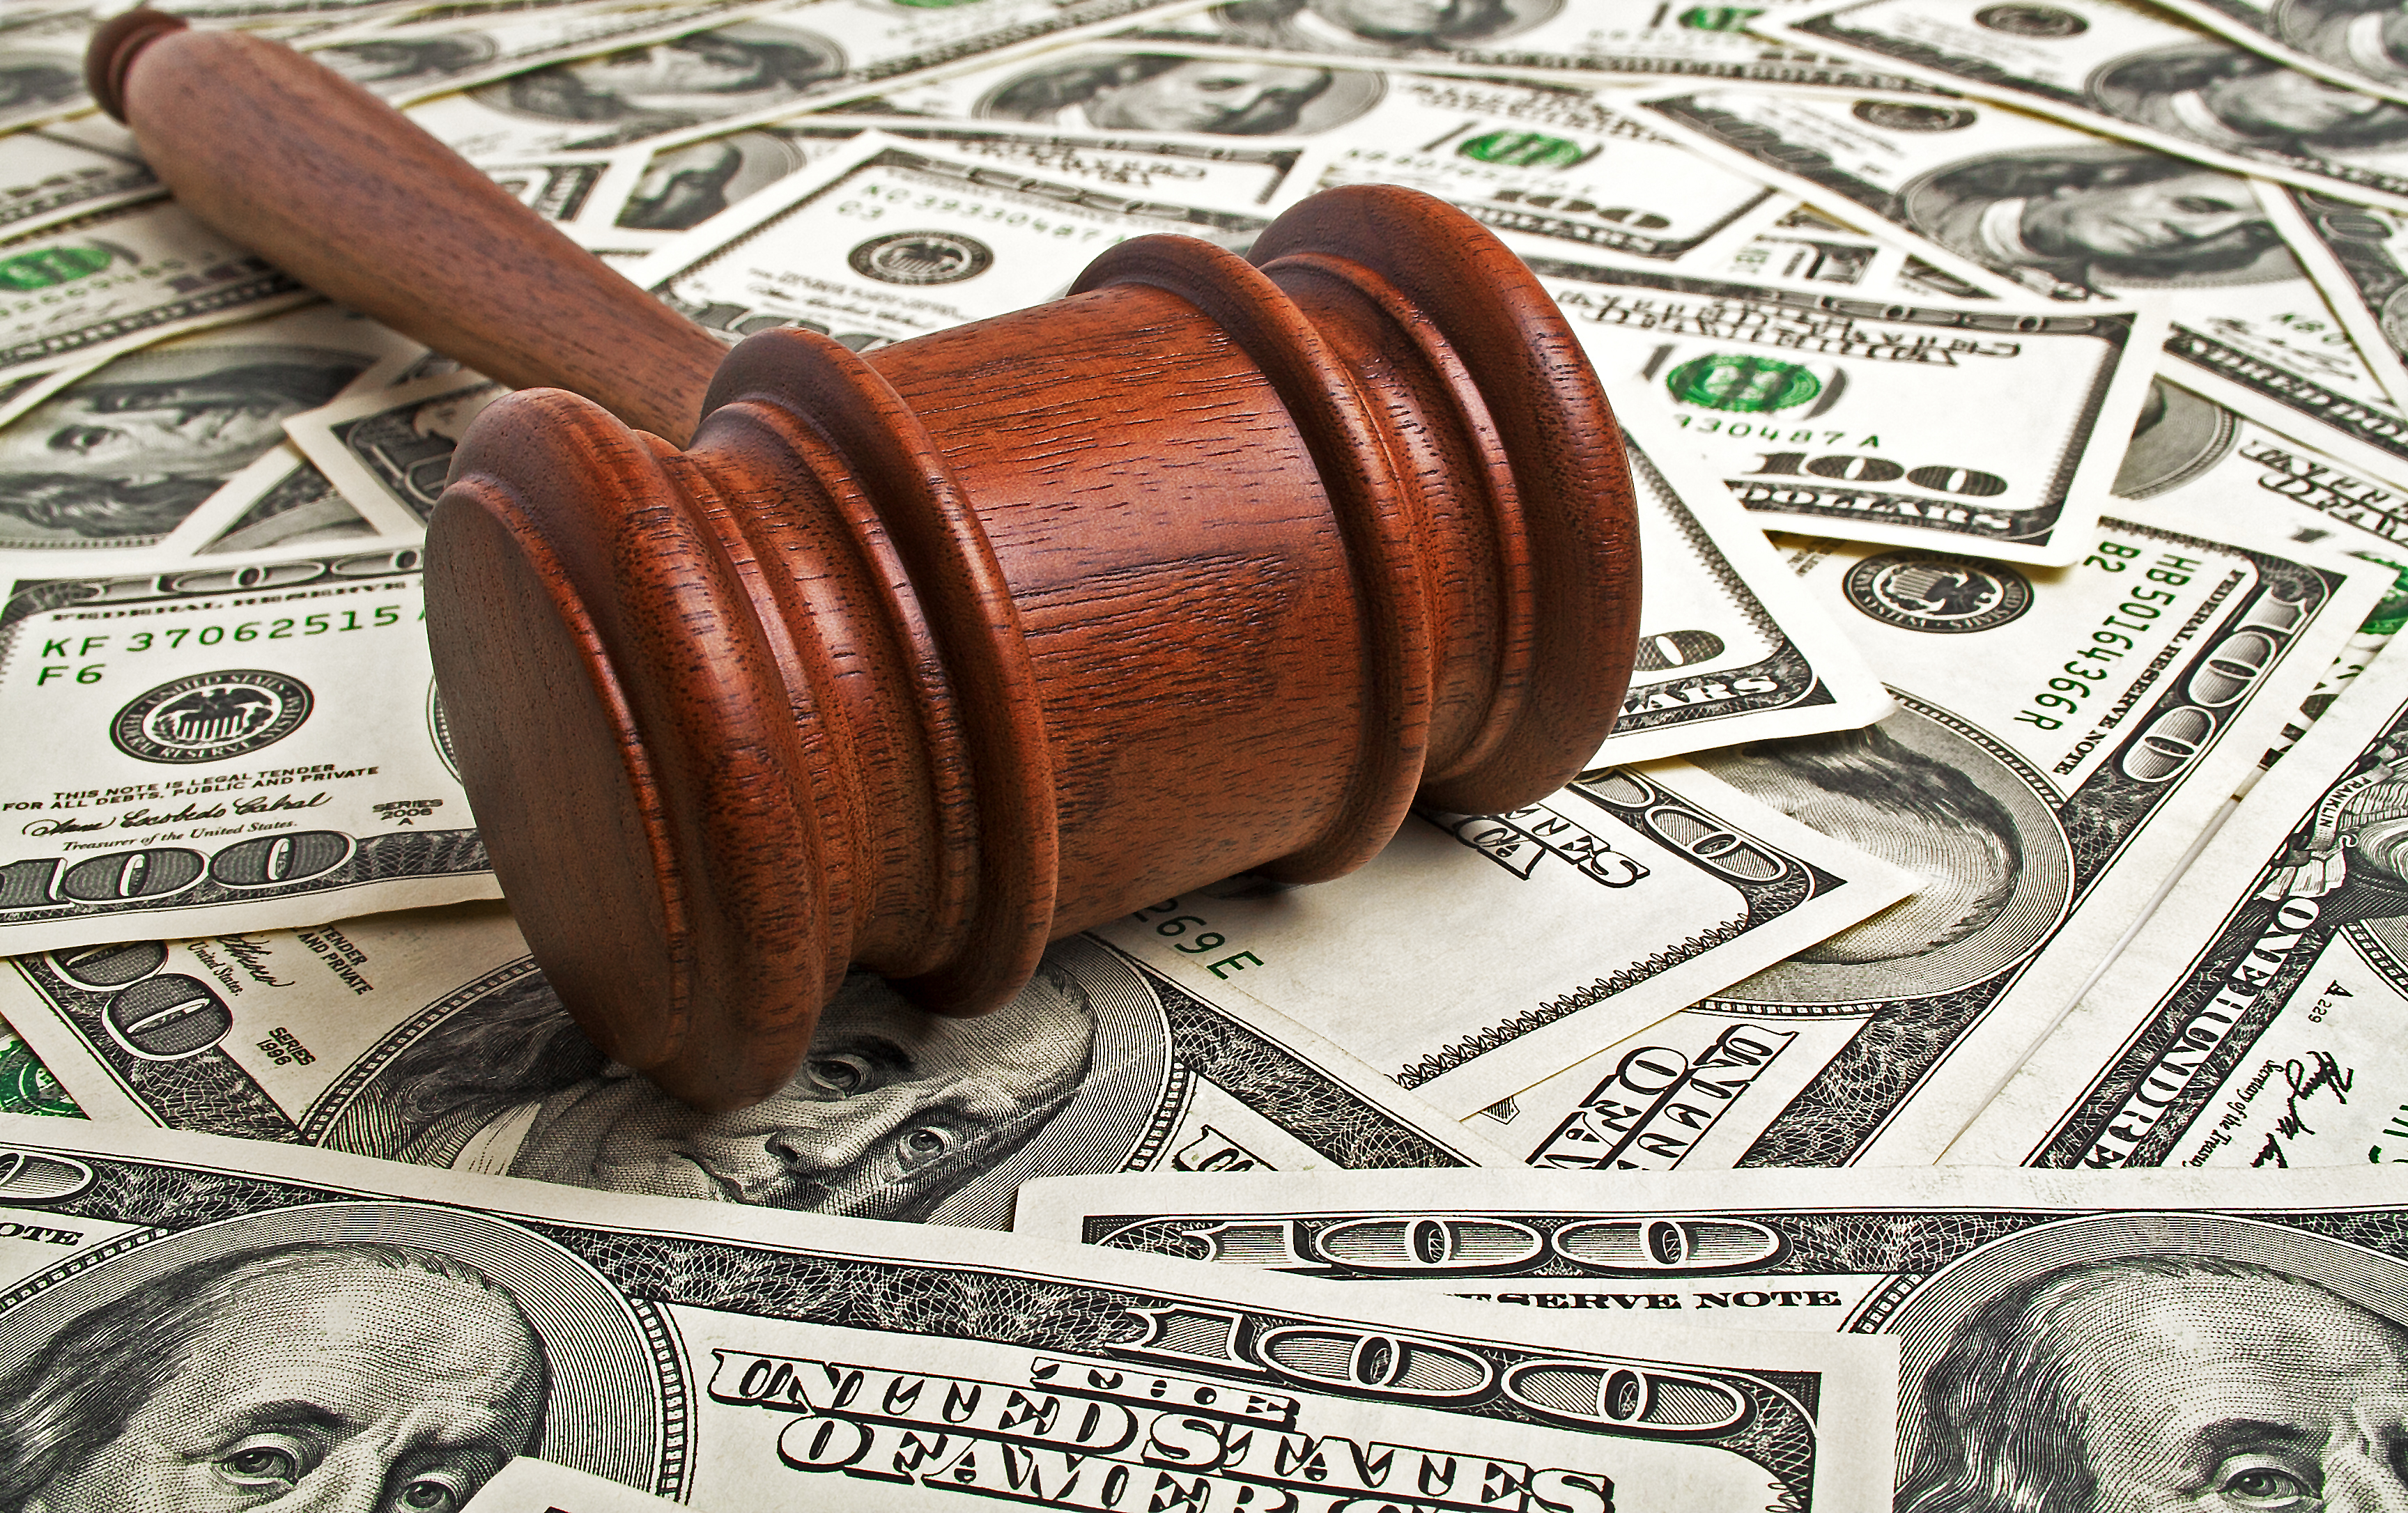 How Long Does it Take to Receive a Settlement Check?